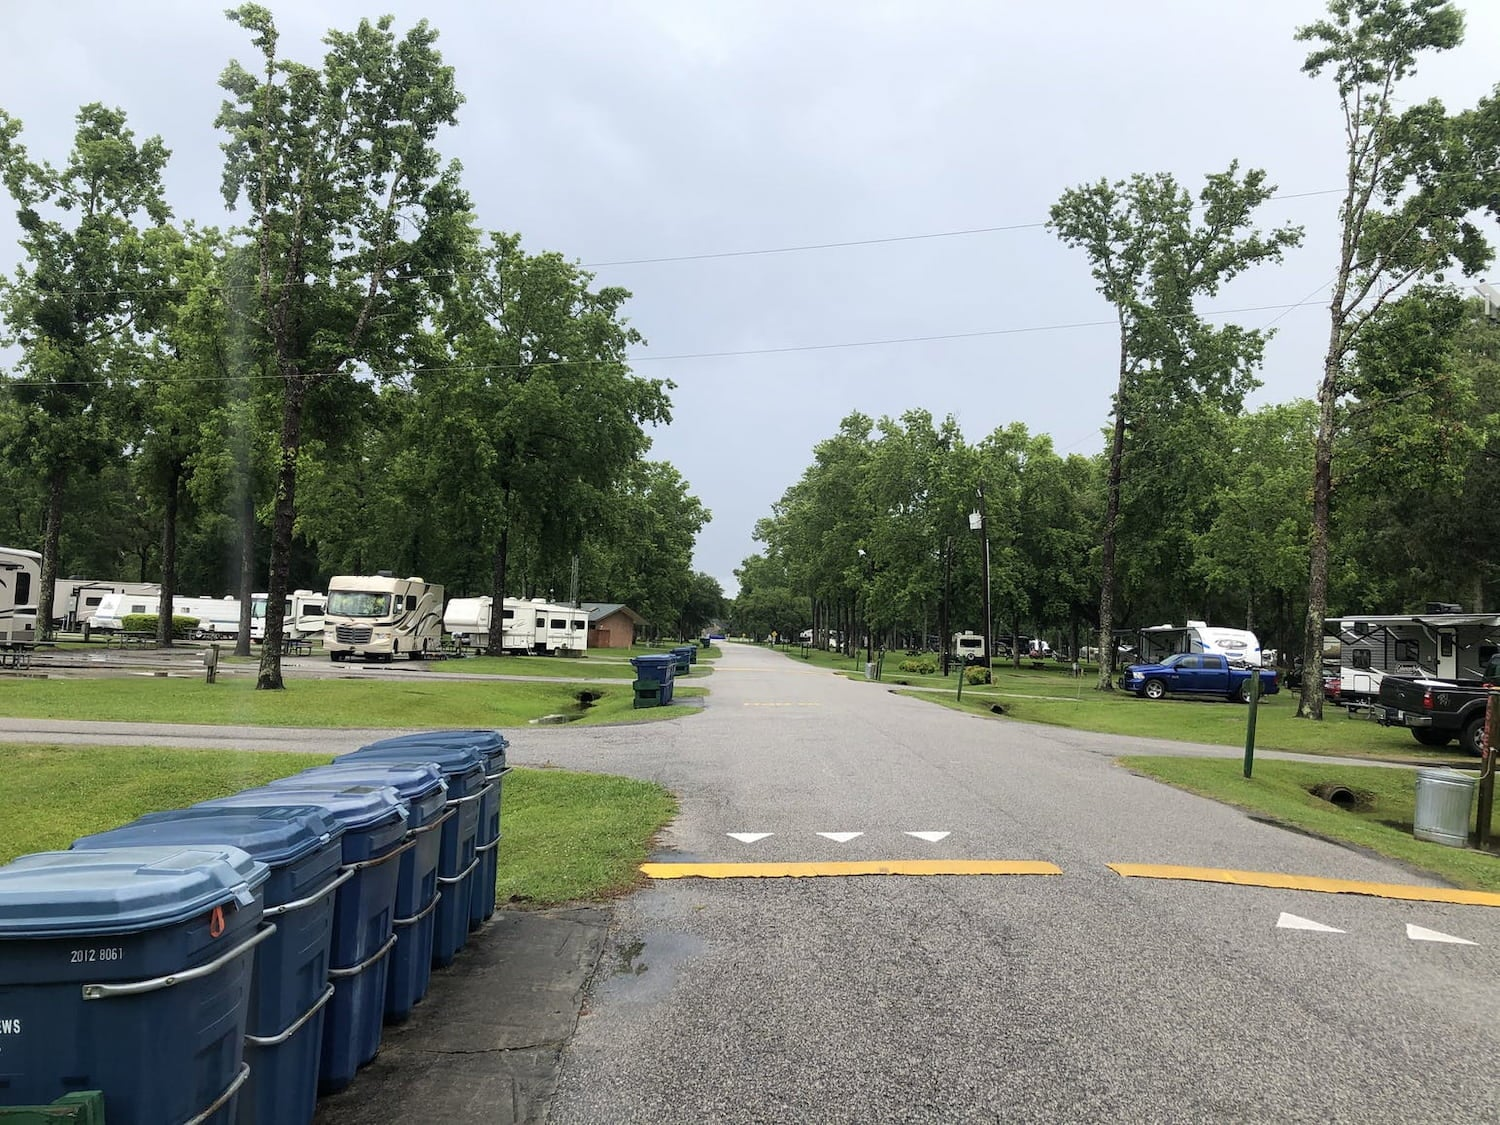 overview of campground with many rvs